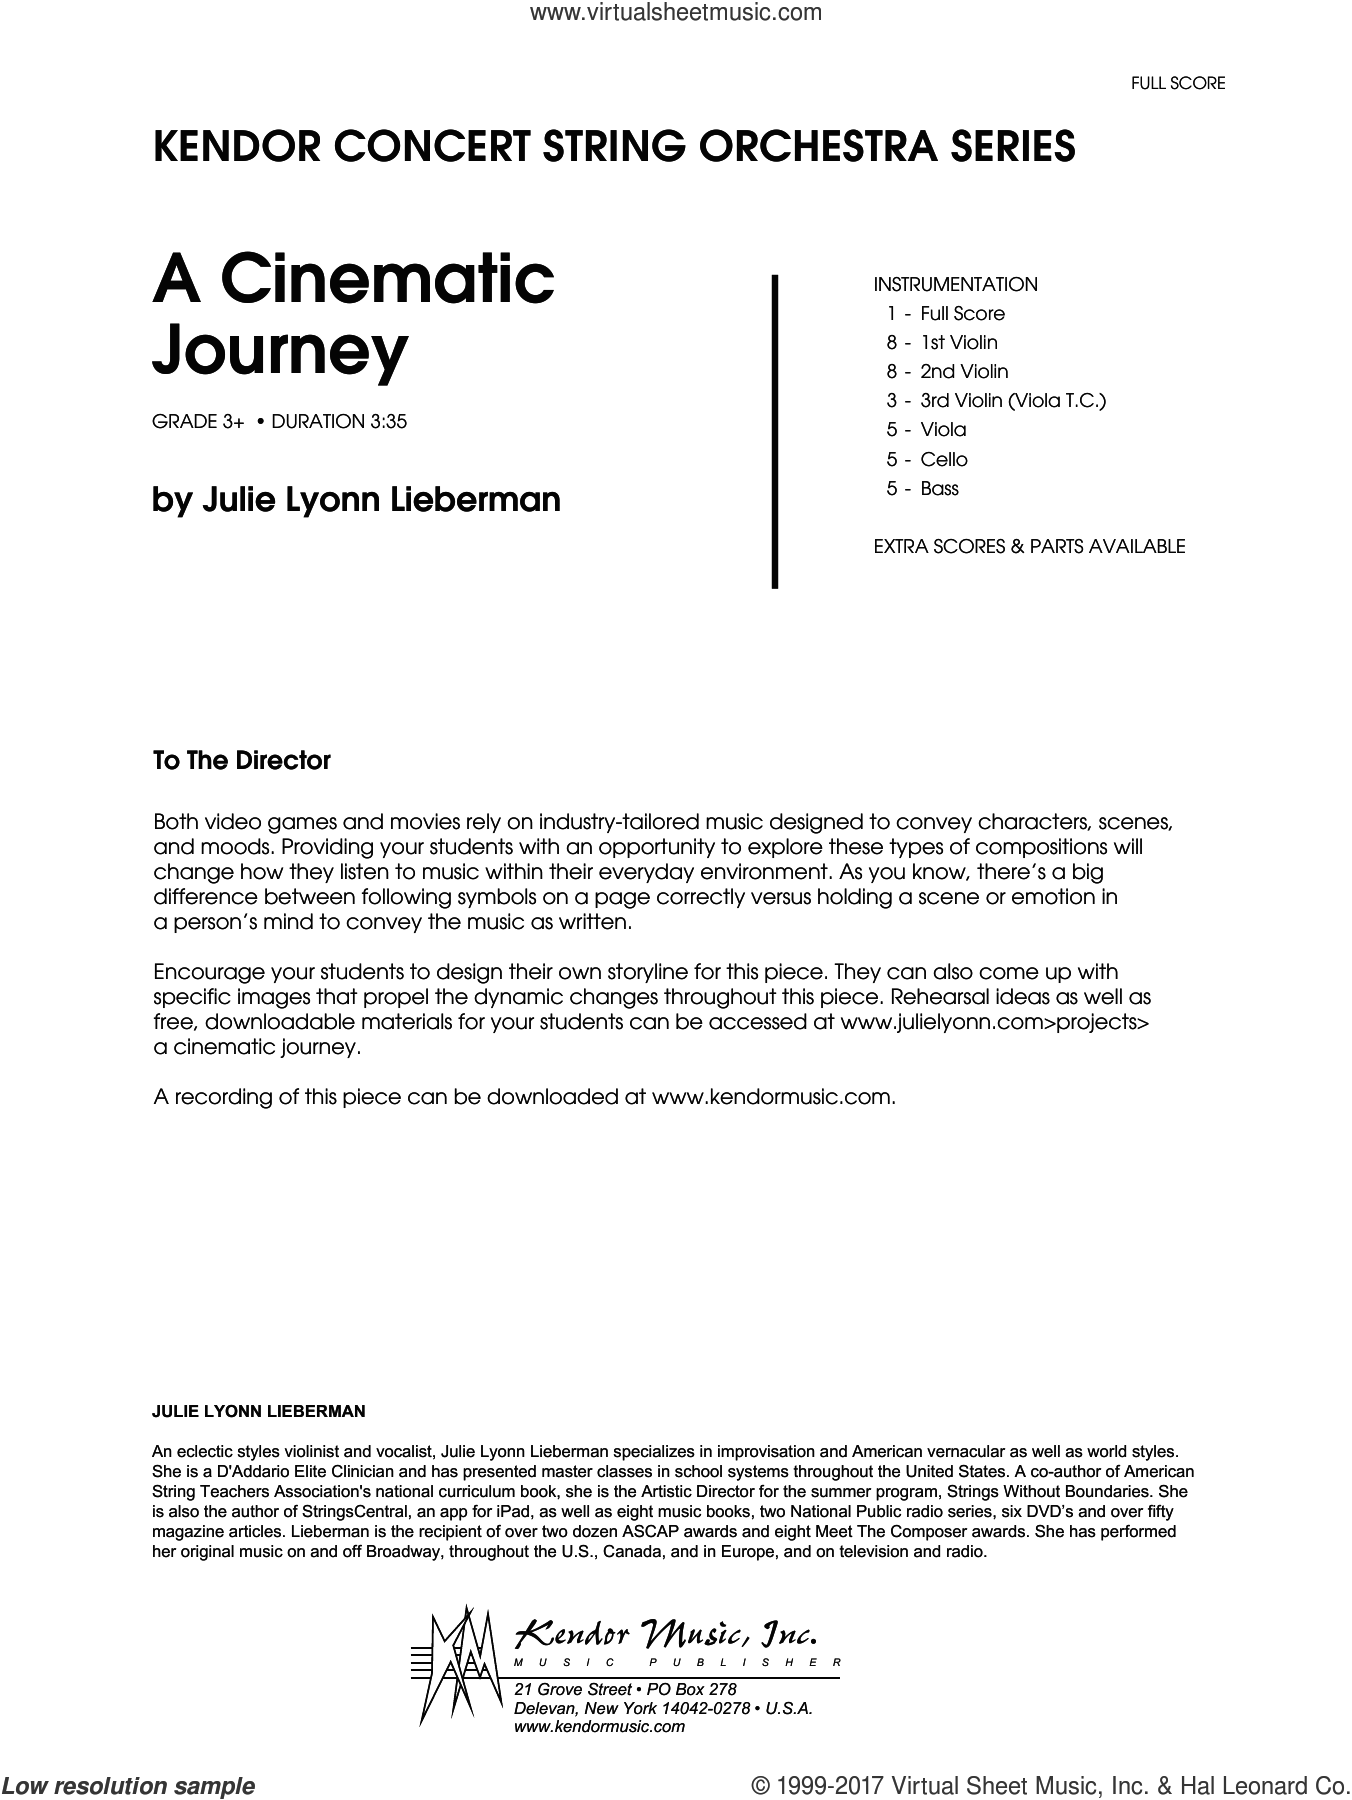 A Cinematic Journey (COMPLETE) sheet music for orchestra by Julie Lyonn Lieberman, intermediate skill level